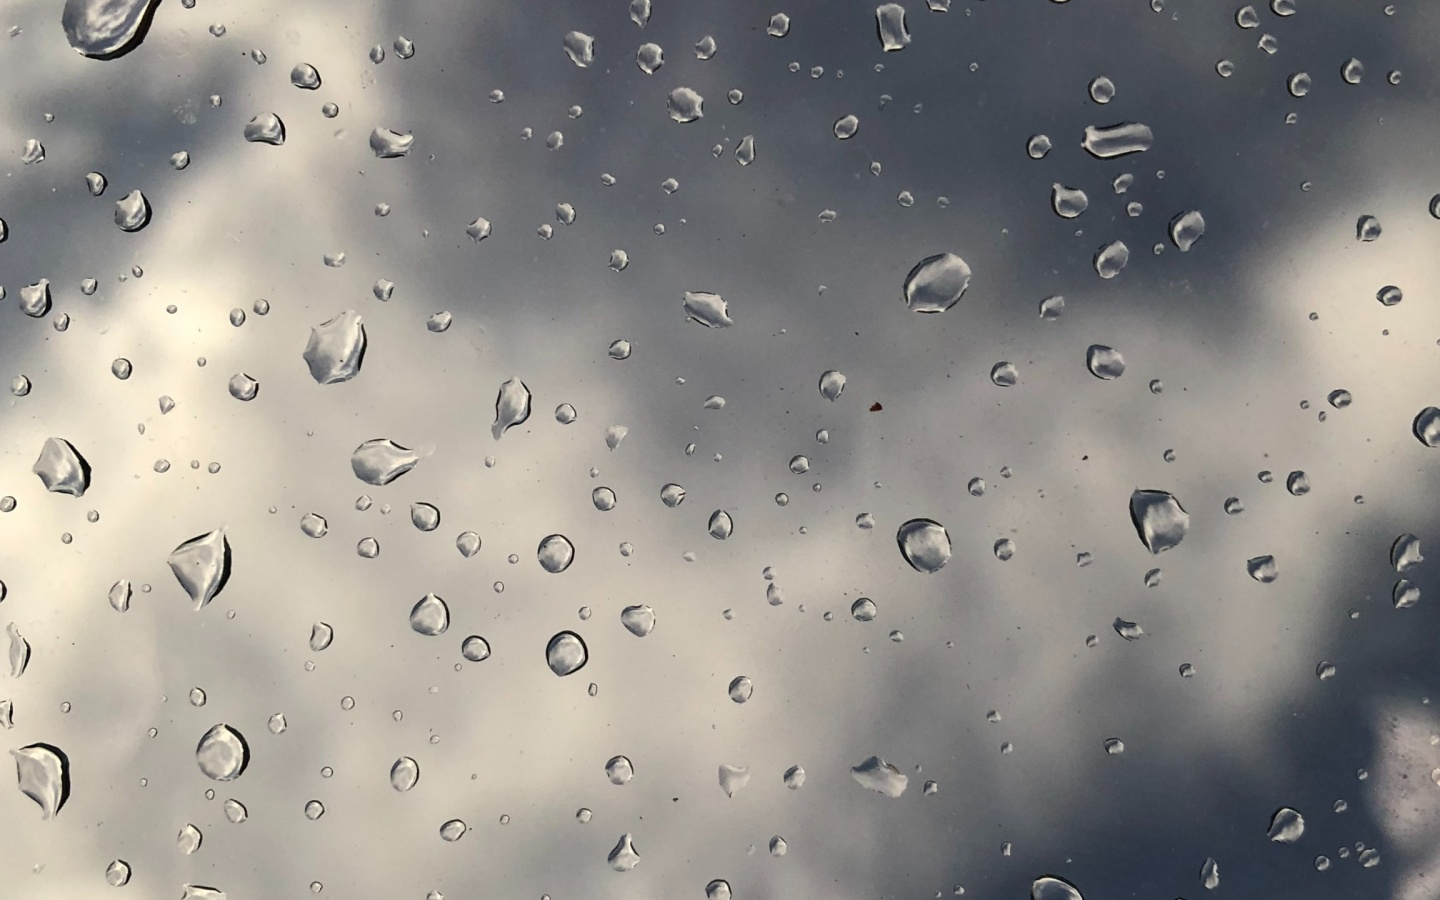 1440x900 drops, surface, glass